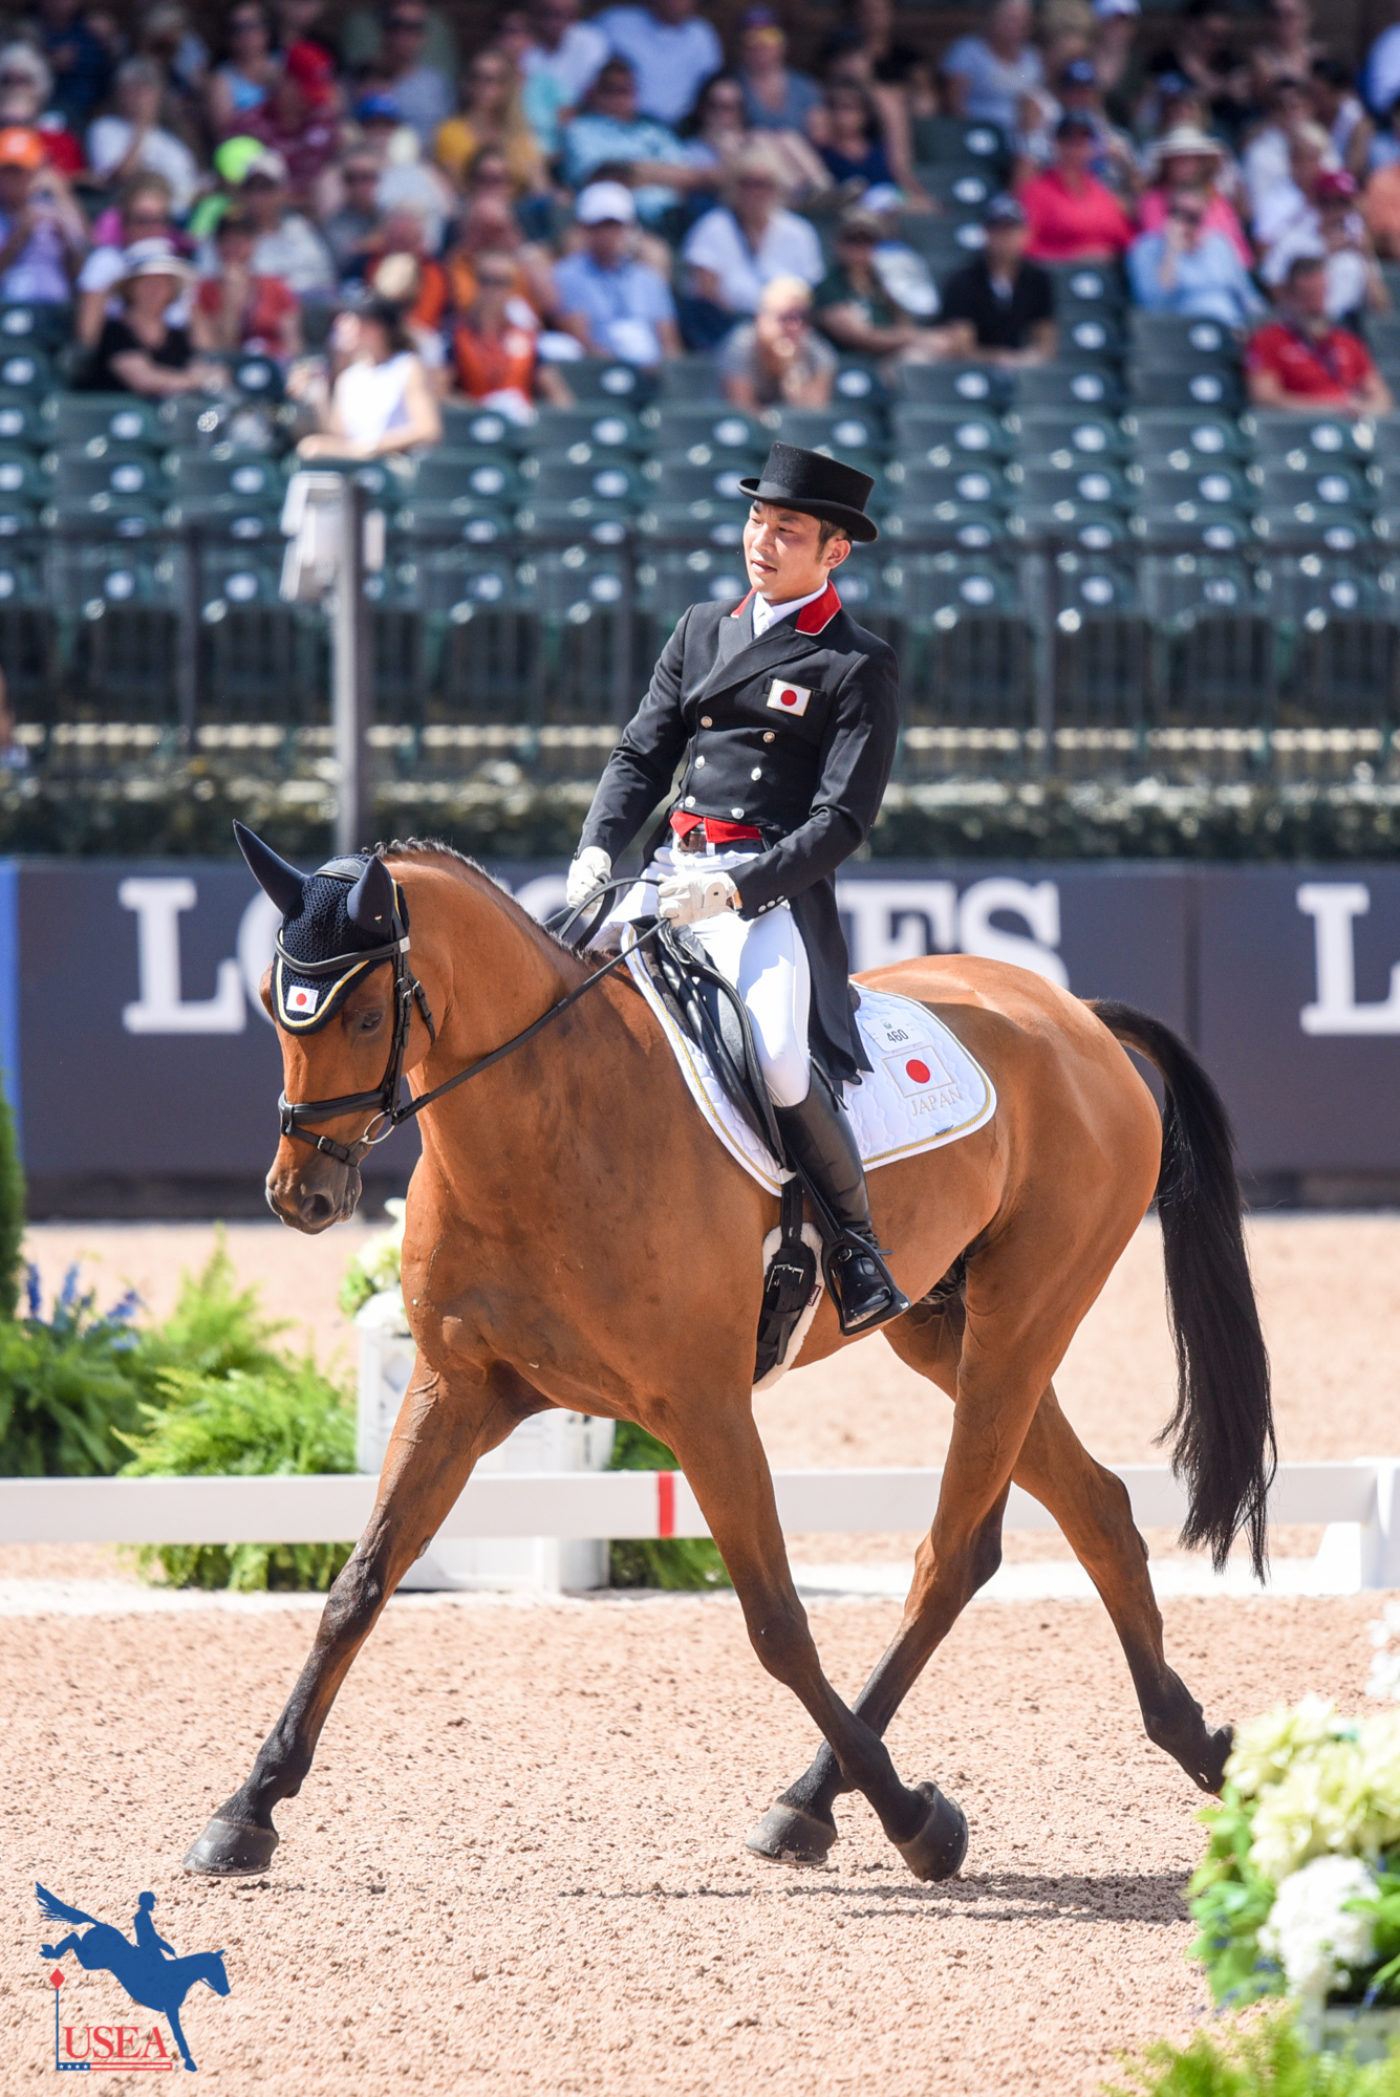 57th - Toshiyuki Tanaka and Talma d'Allou (JPN)